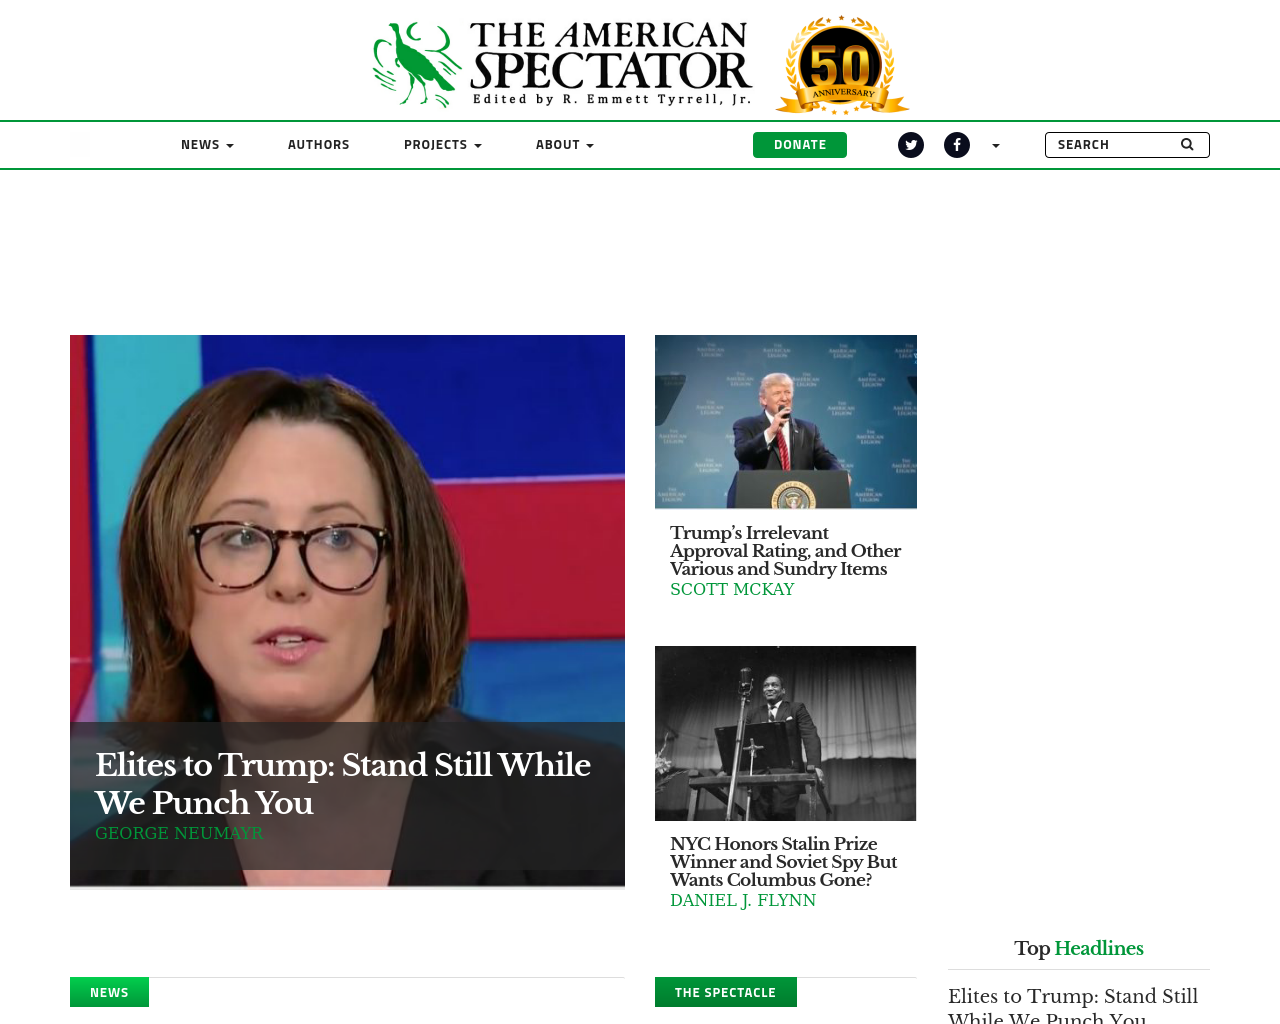 The-American-Spectator-Advertising-Reviews-Pricing